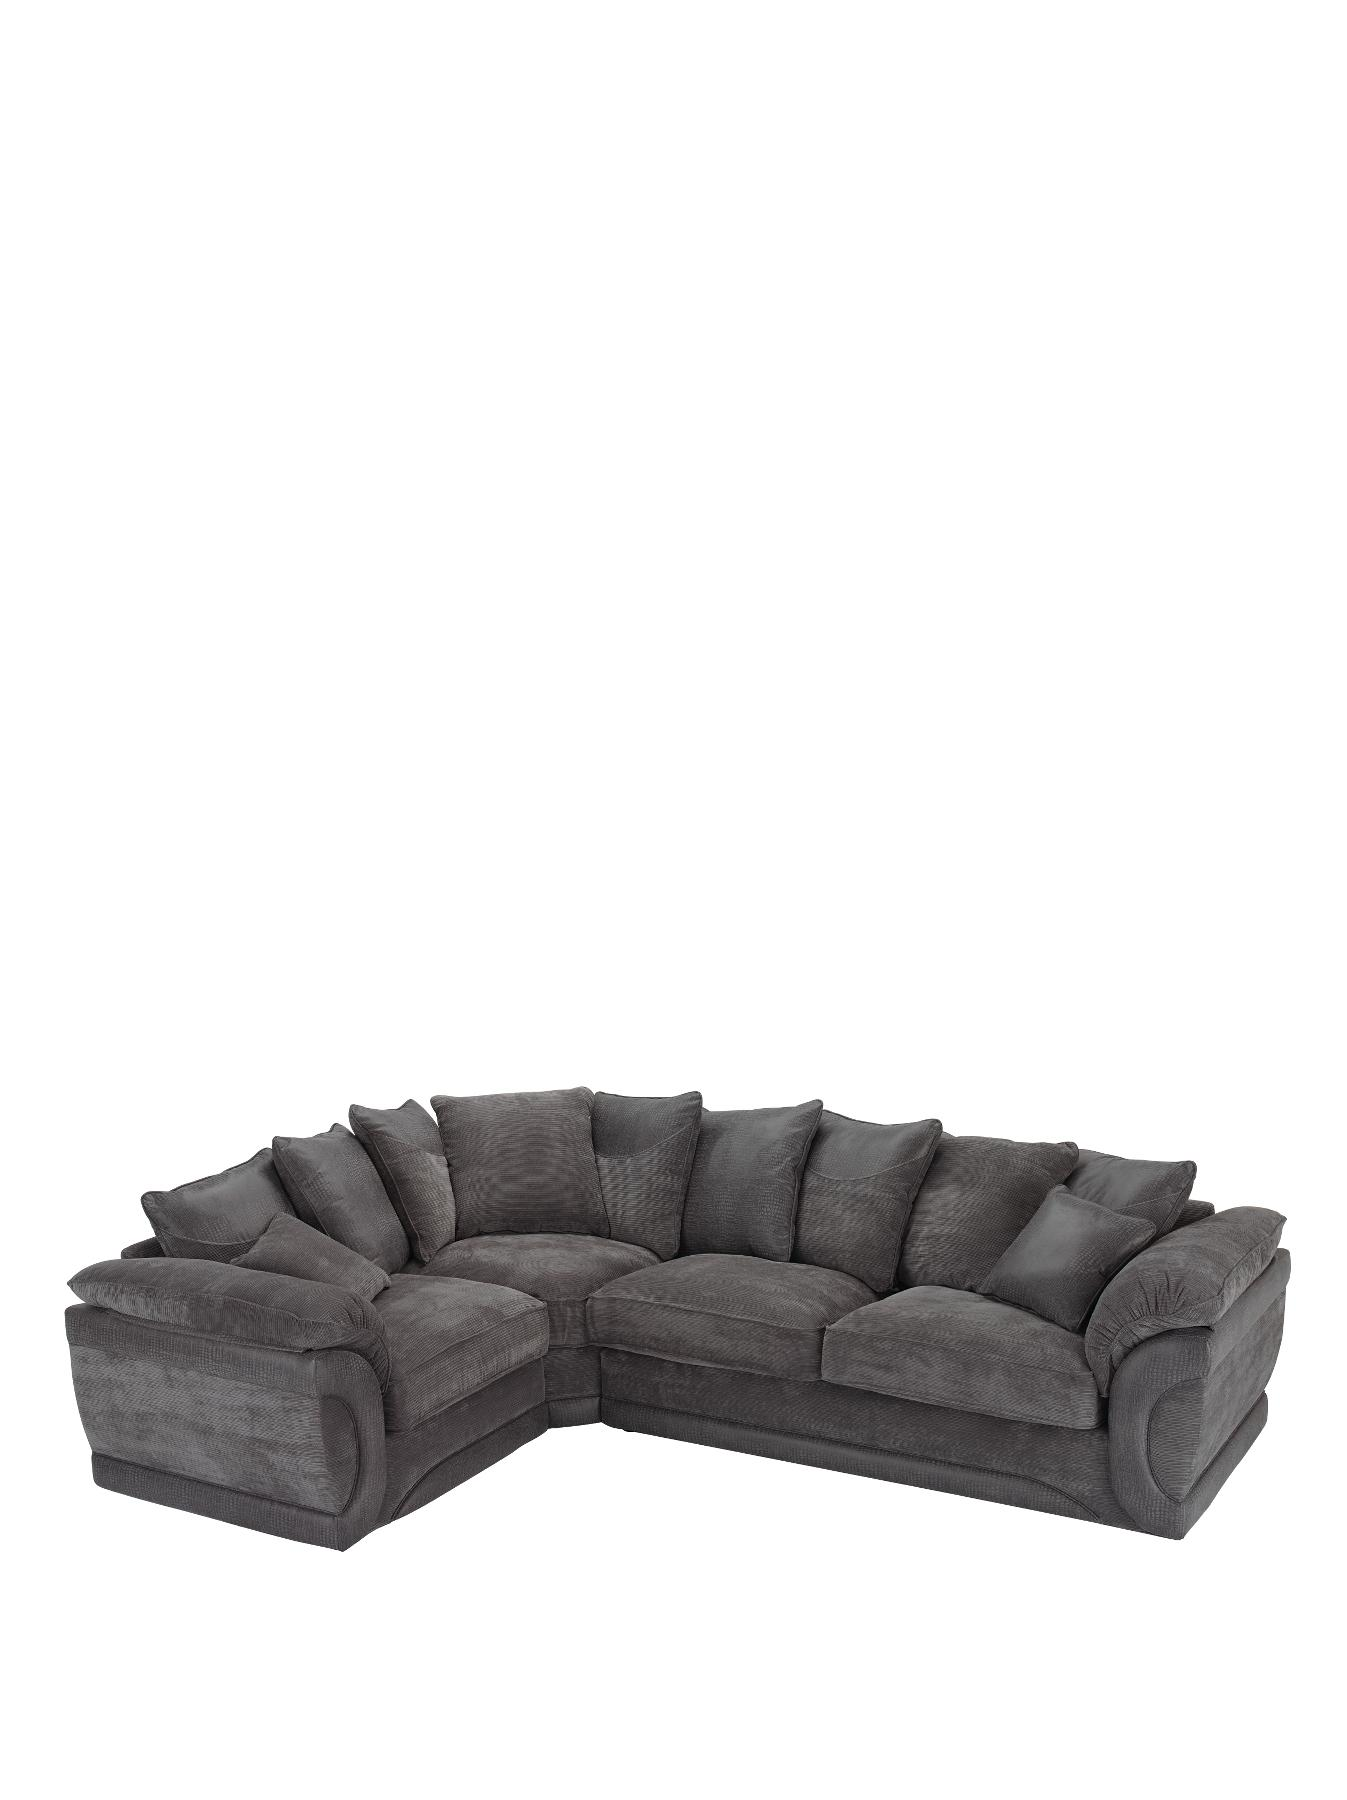 Maze Fabric and Faux Leather LeftHand Corner Group Sofa ChocolateGreyBlack